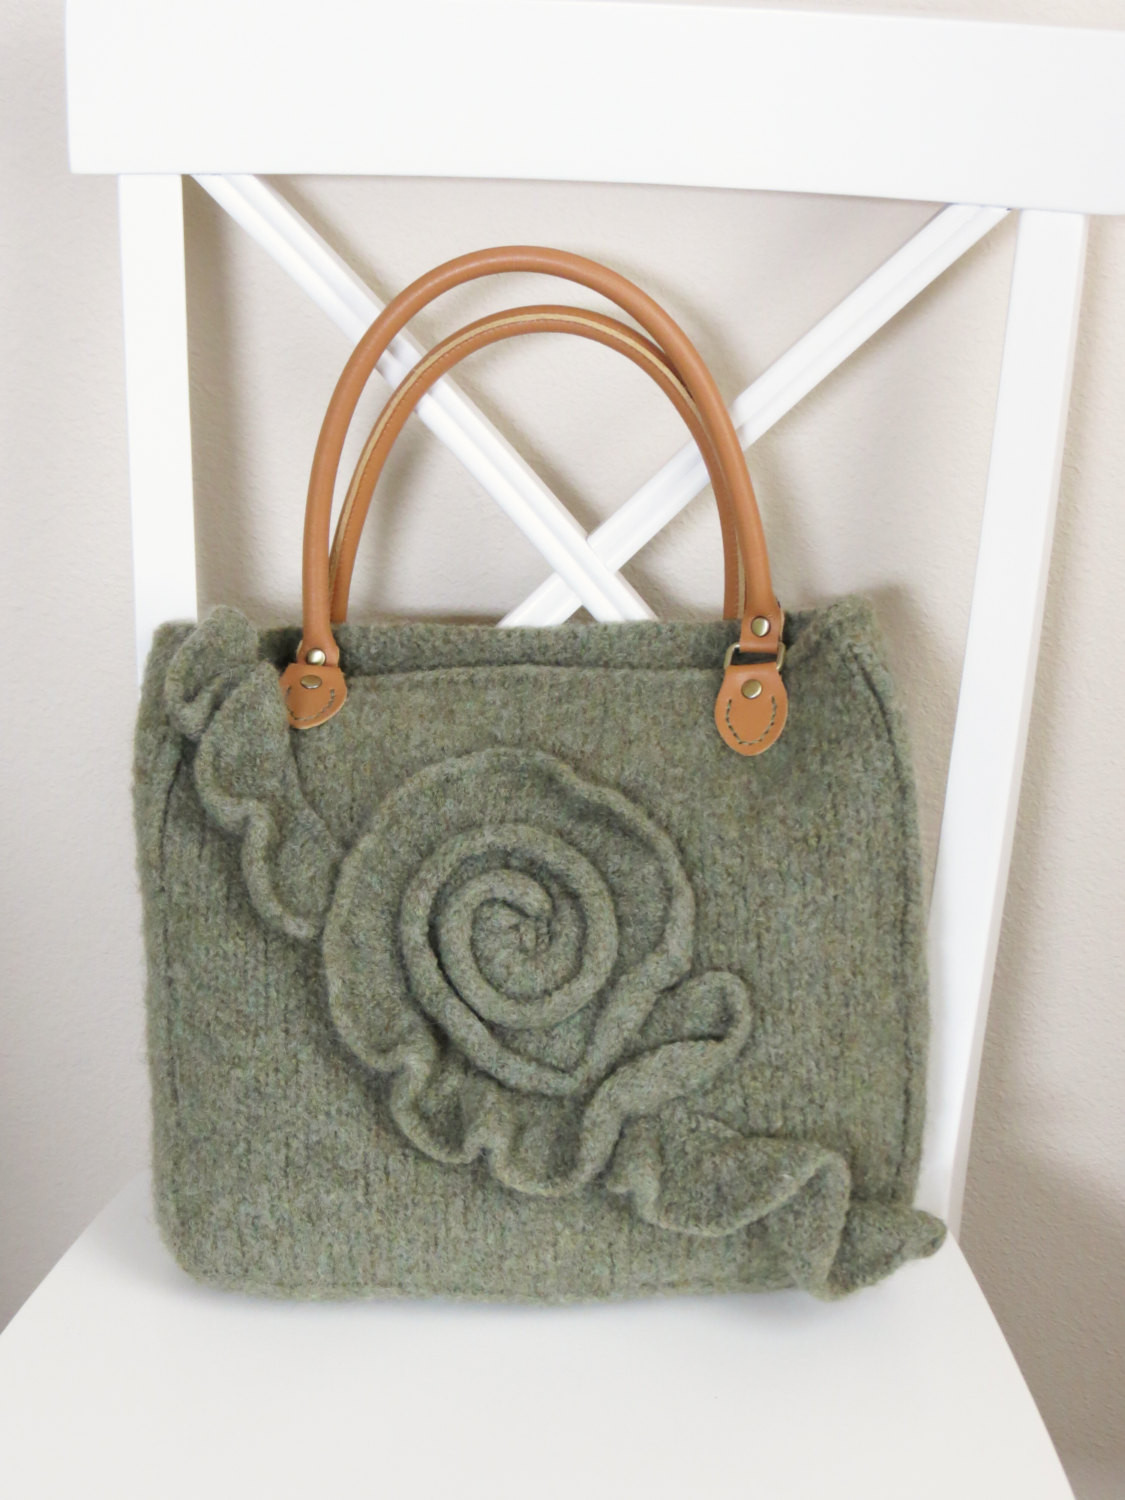 Elegant Knit and Felted Purse Pattern Bag tote by Deboraholearypattern Knitting Bags and totes Of Marvelous 48 Ideas Knitting Bags and totes